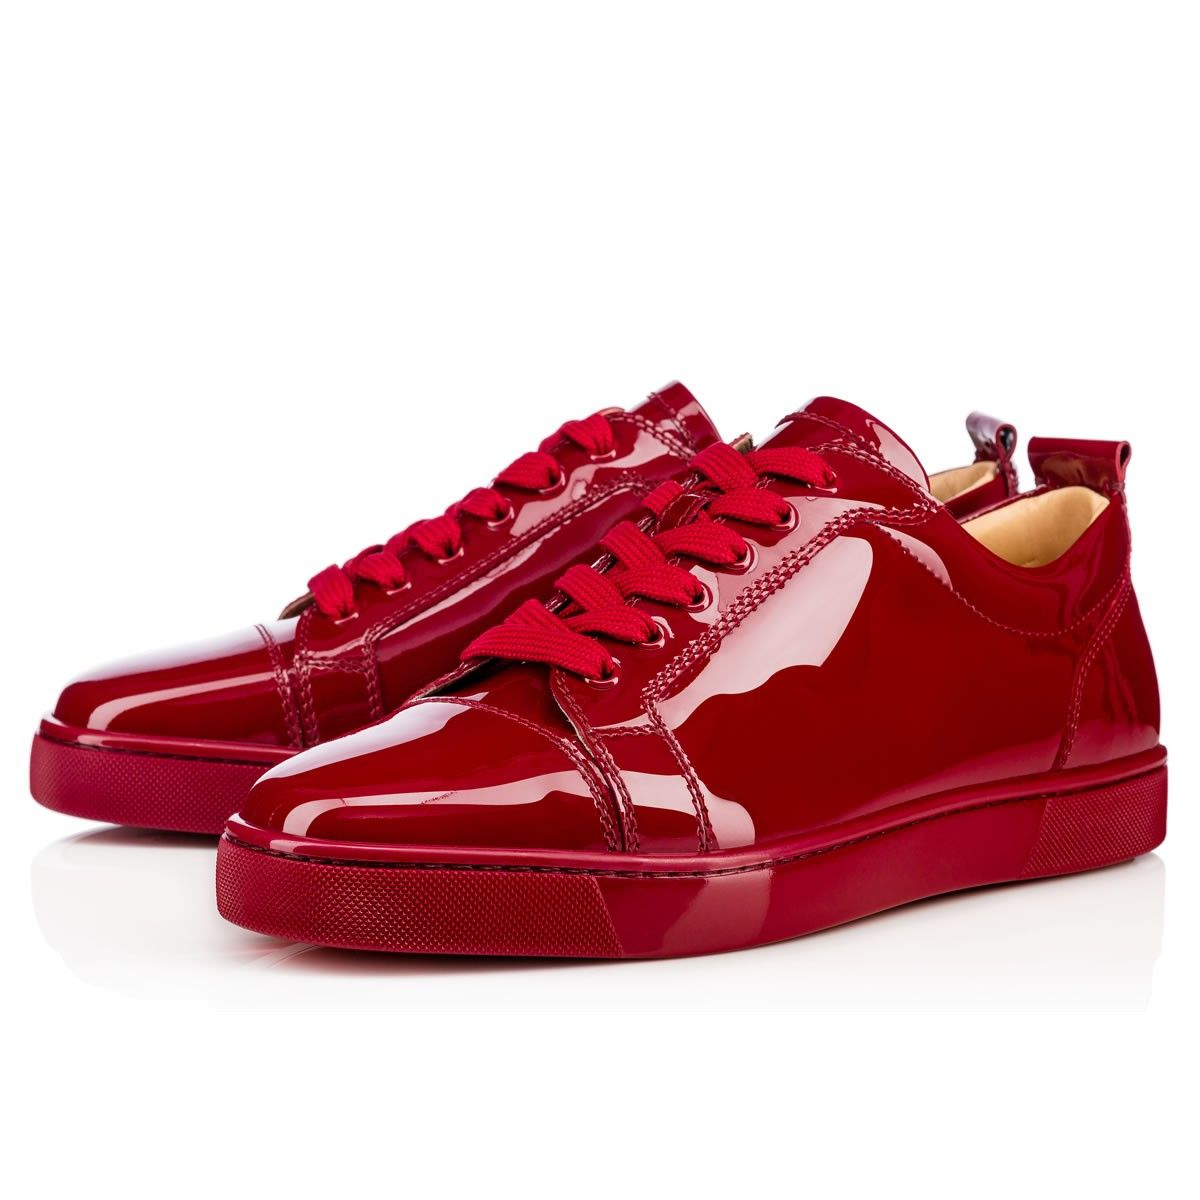 079b44adba73 CHRISTIAN LOUBOUTIN Louis Junior Men S Flat Carmin Patent Leather - Men  Shoes - Christian Louboutin.  christianlouboutin  shoes